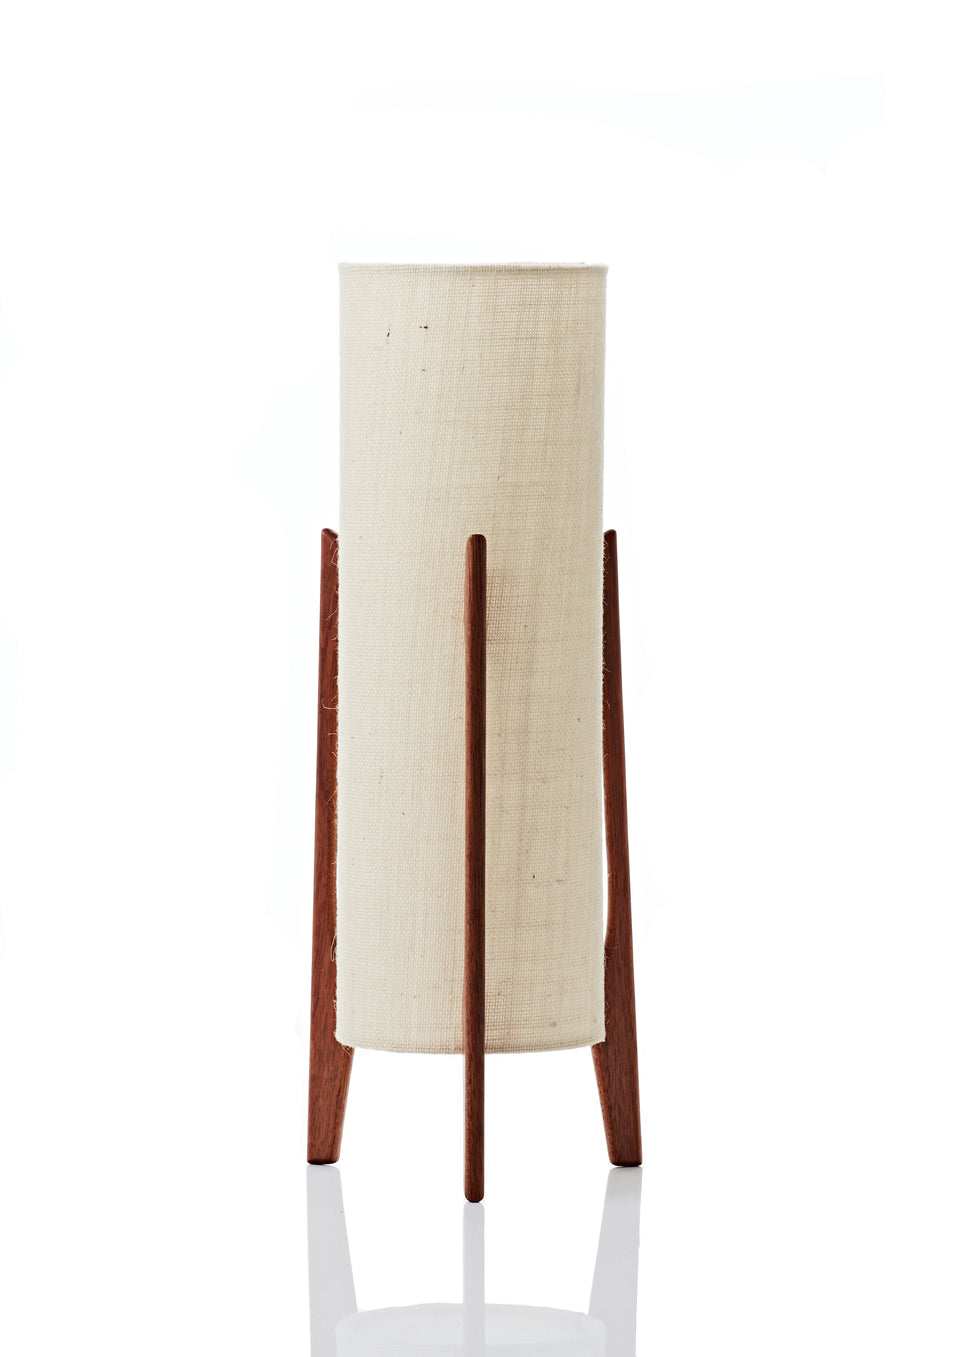 Rocket Table Lamp • Tall - Vanilla Hessian